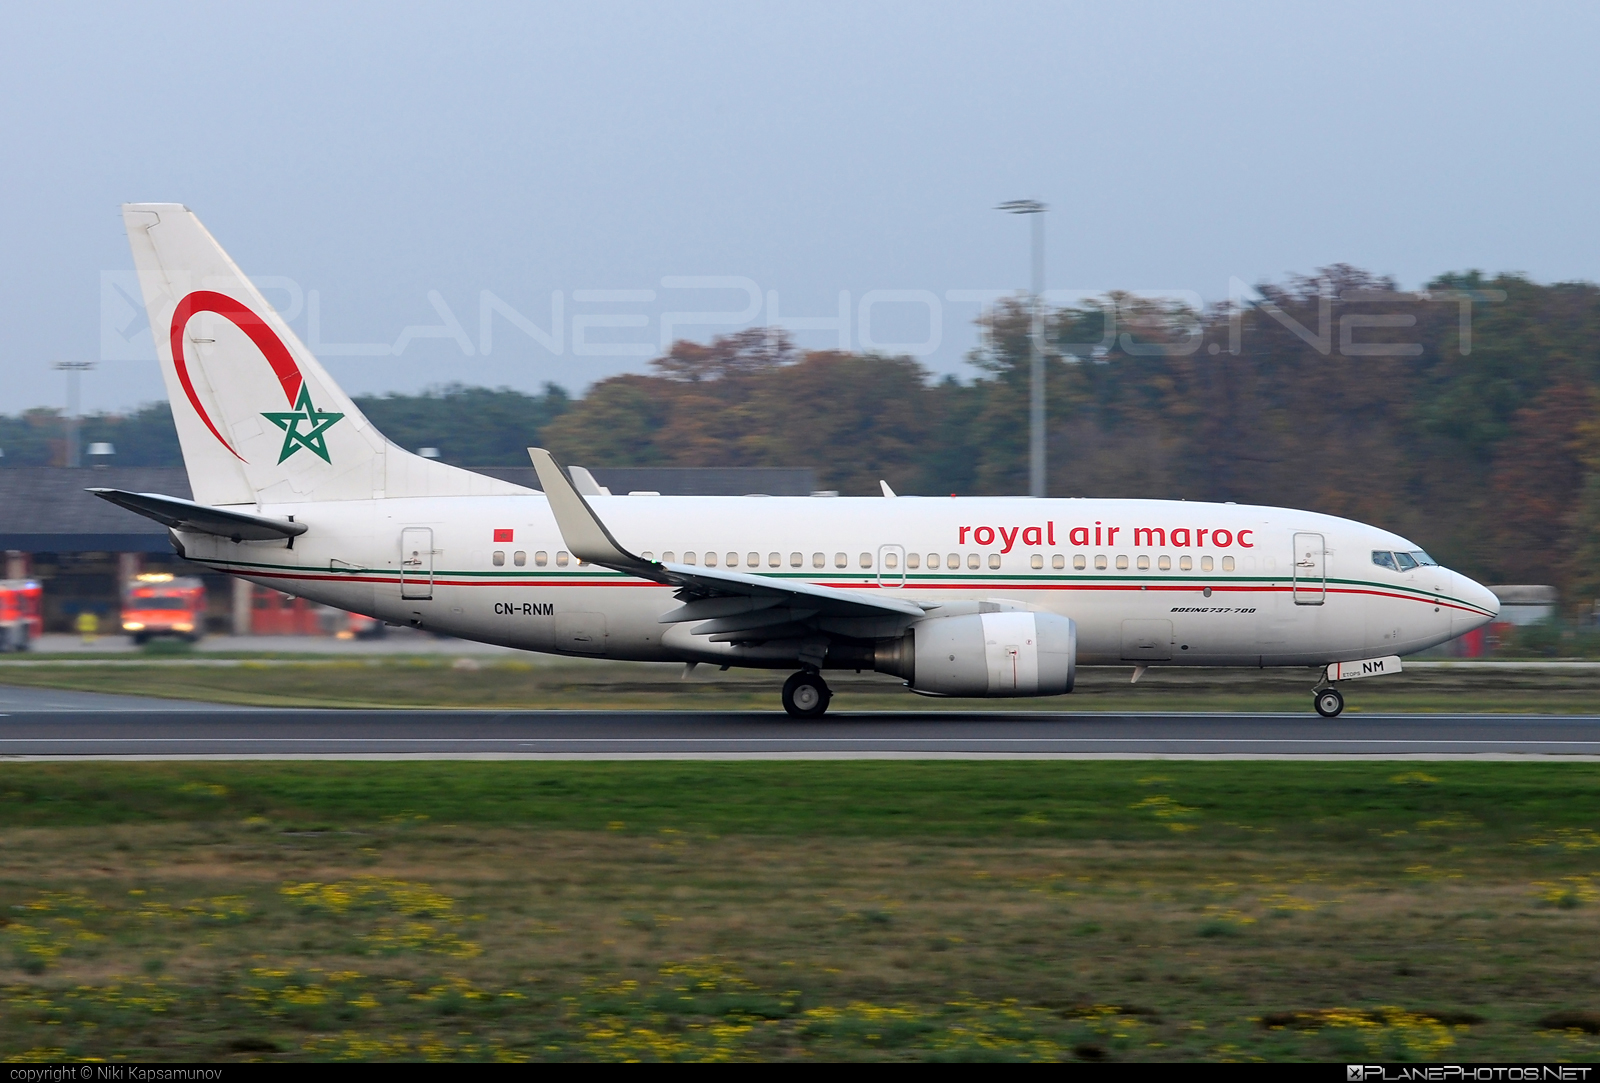 Boeing 737-700 - CN-RNM operated by Royal Air Maroc (RAM) #b737 #b737nextgen #b737ng #boeing #boeing737 #royalairmaroc